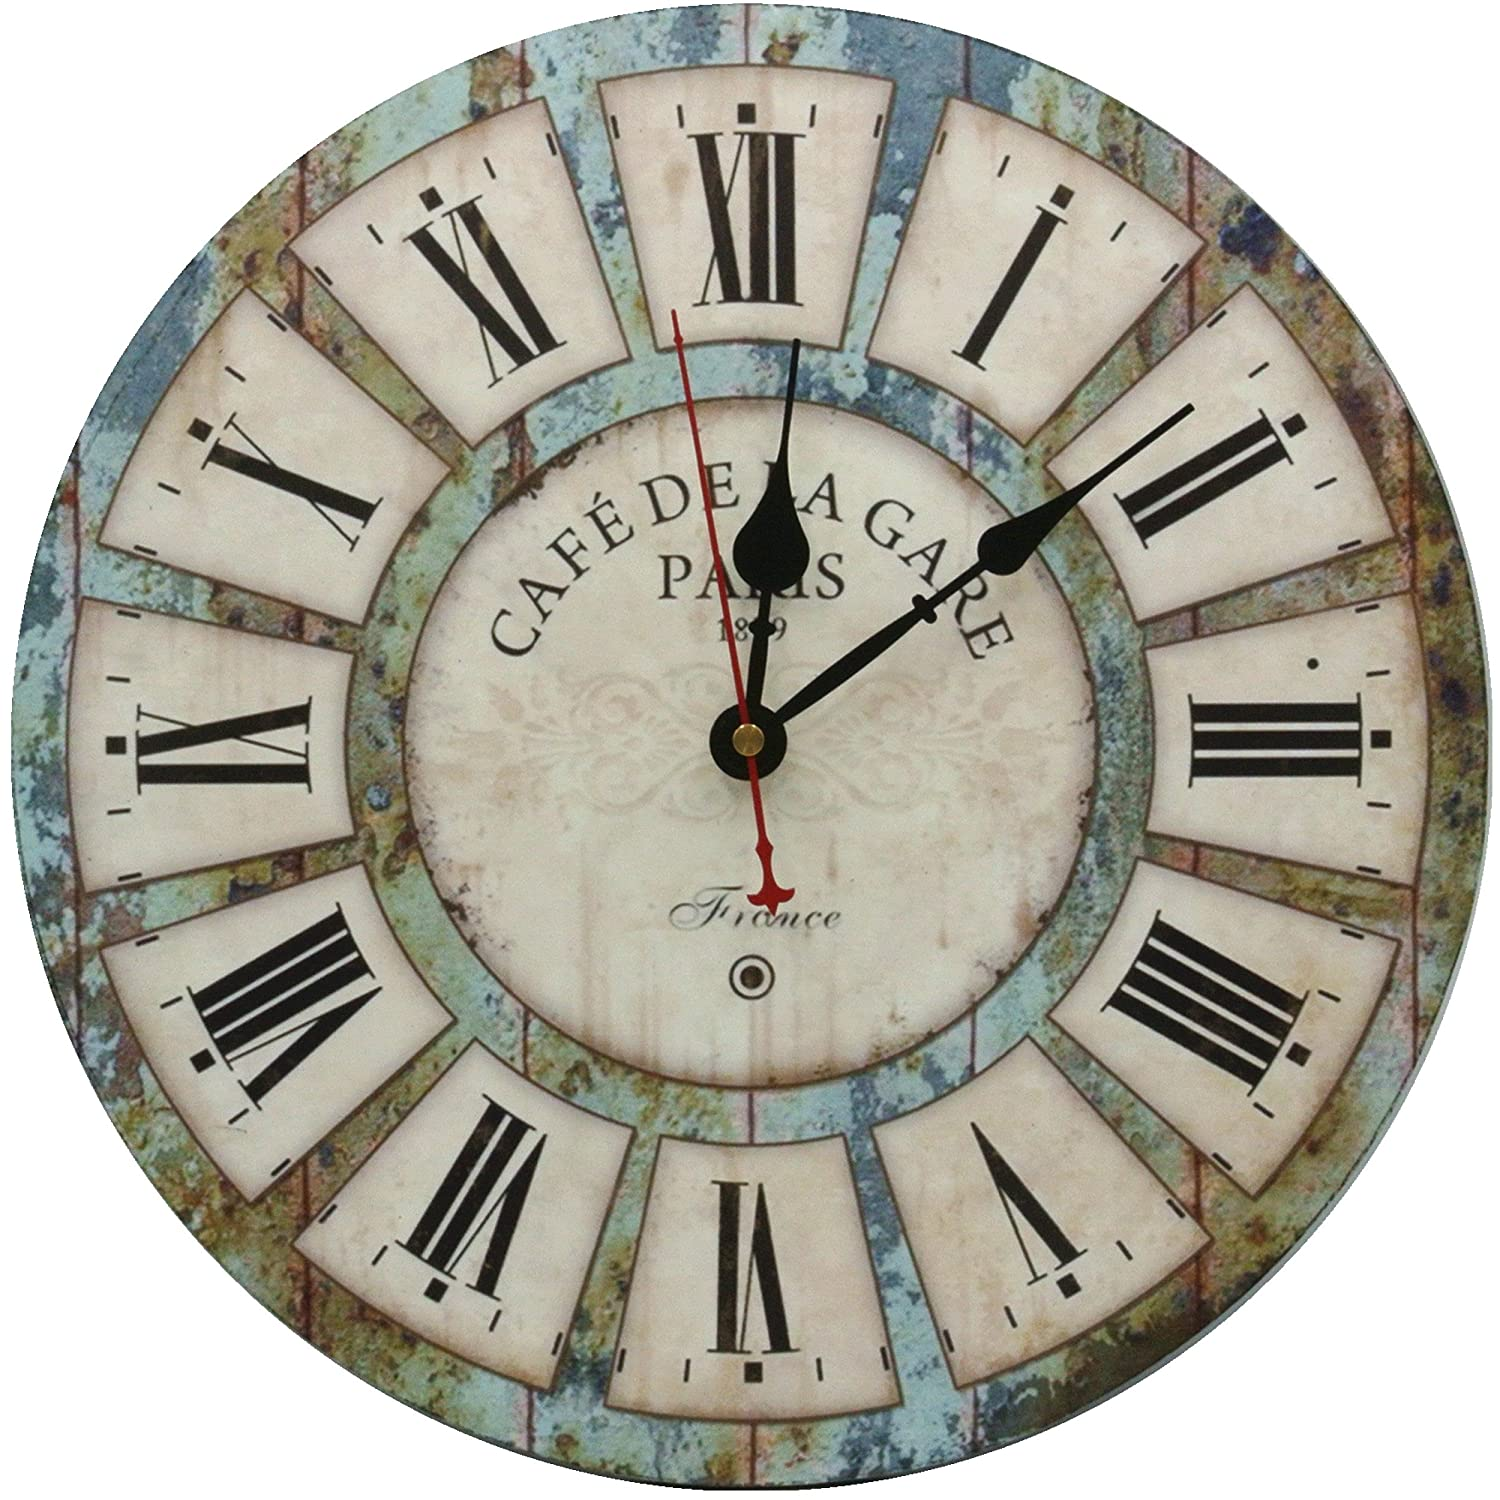 RELIAN Decorative Wall Clock 12-Inch Vintage Rustic Battery Operated Silent Non Ticking Round for Living Room Bathroom Kitchen Bedroom Decor